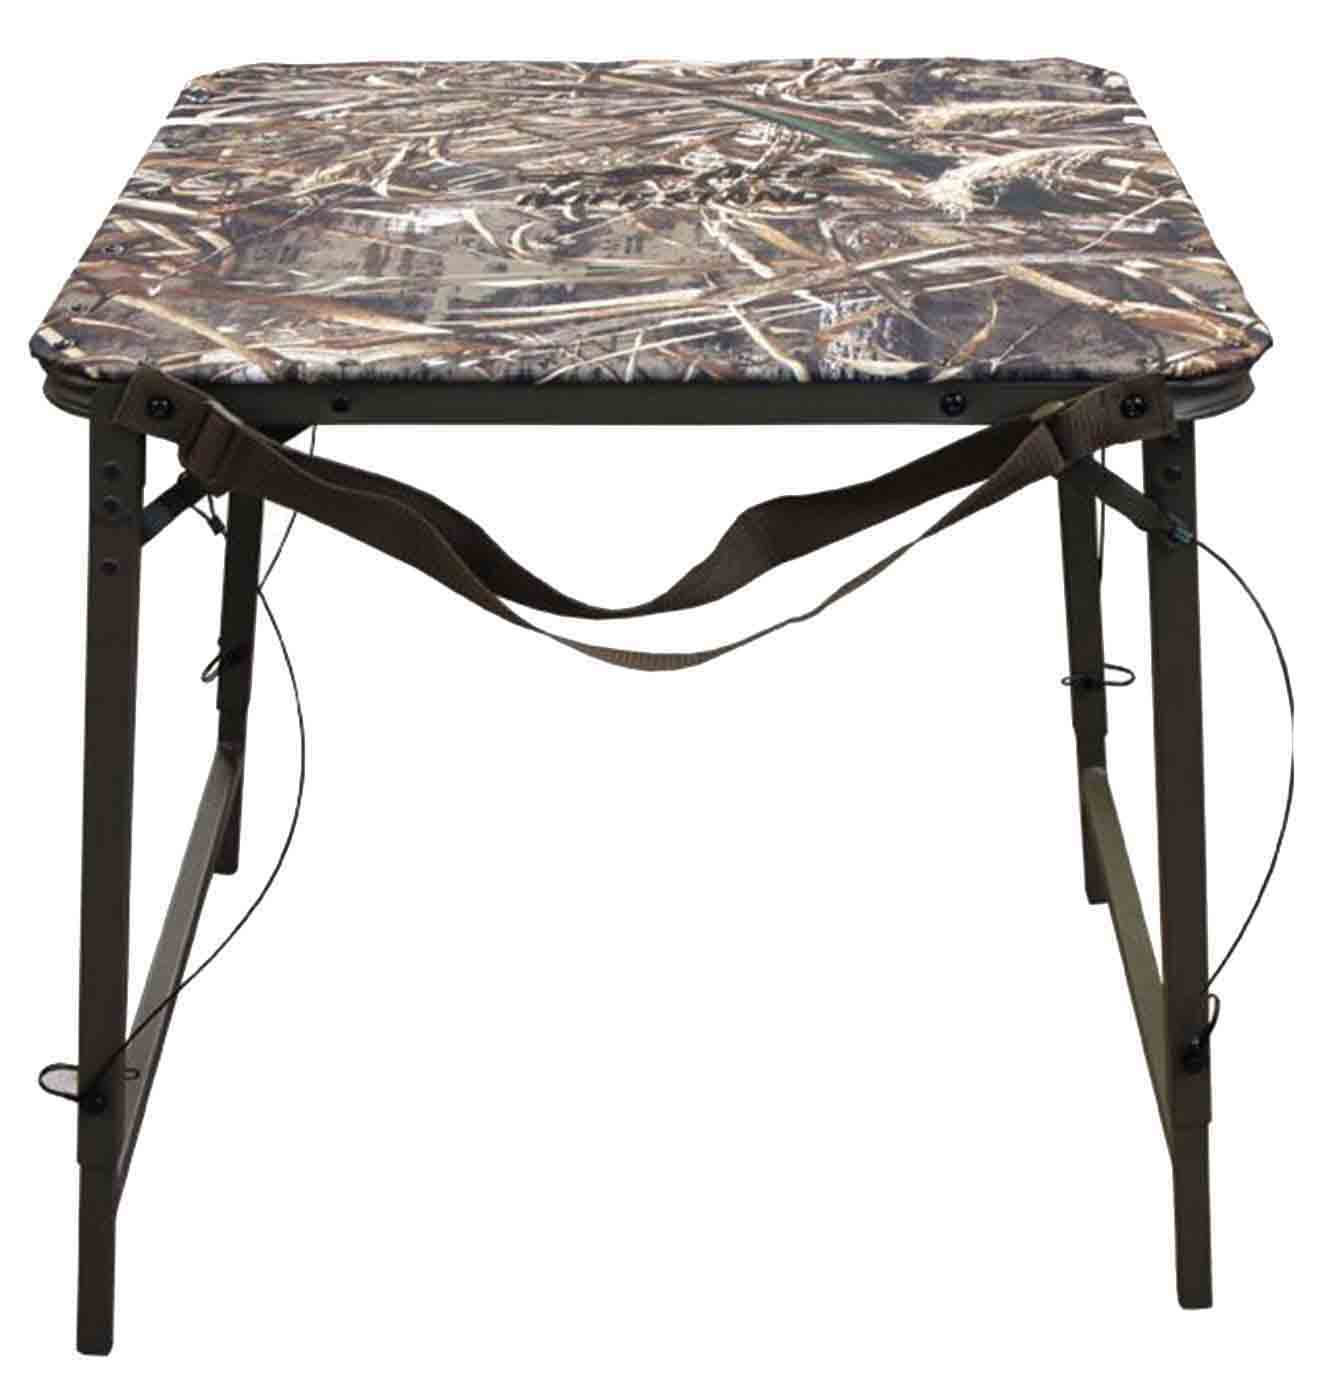 Avery Sporting Dog Ruff Stand in Realtree Max 5_1.jpg